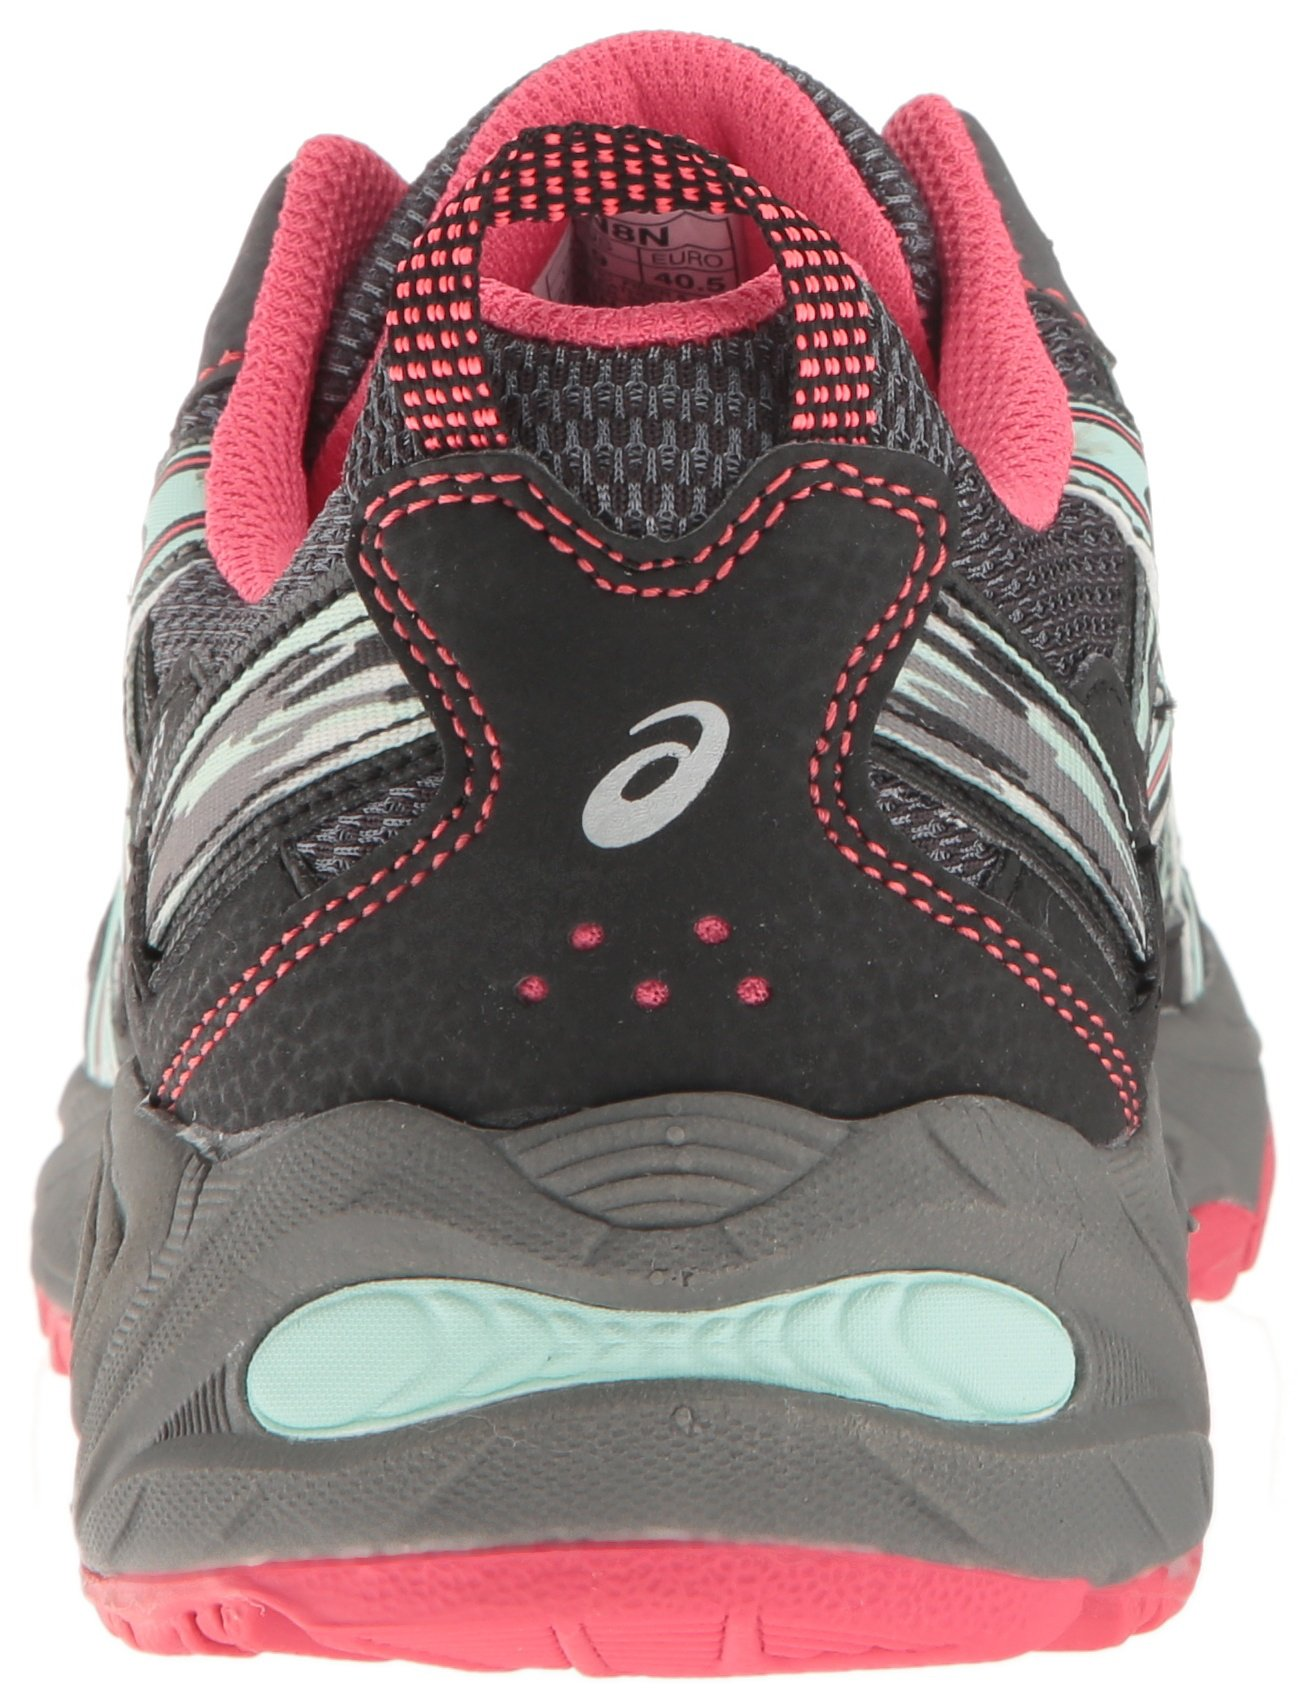 ASICS Women's Gel-Venture 5 Trail Runner, Carbon/Diva Pink/Bay, 9 M US by ASICS (Image #2)